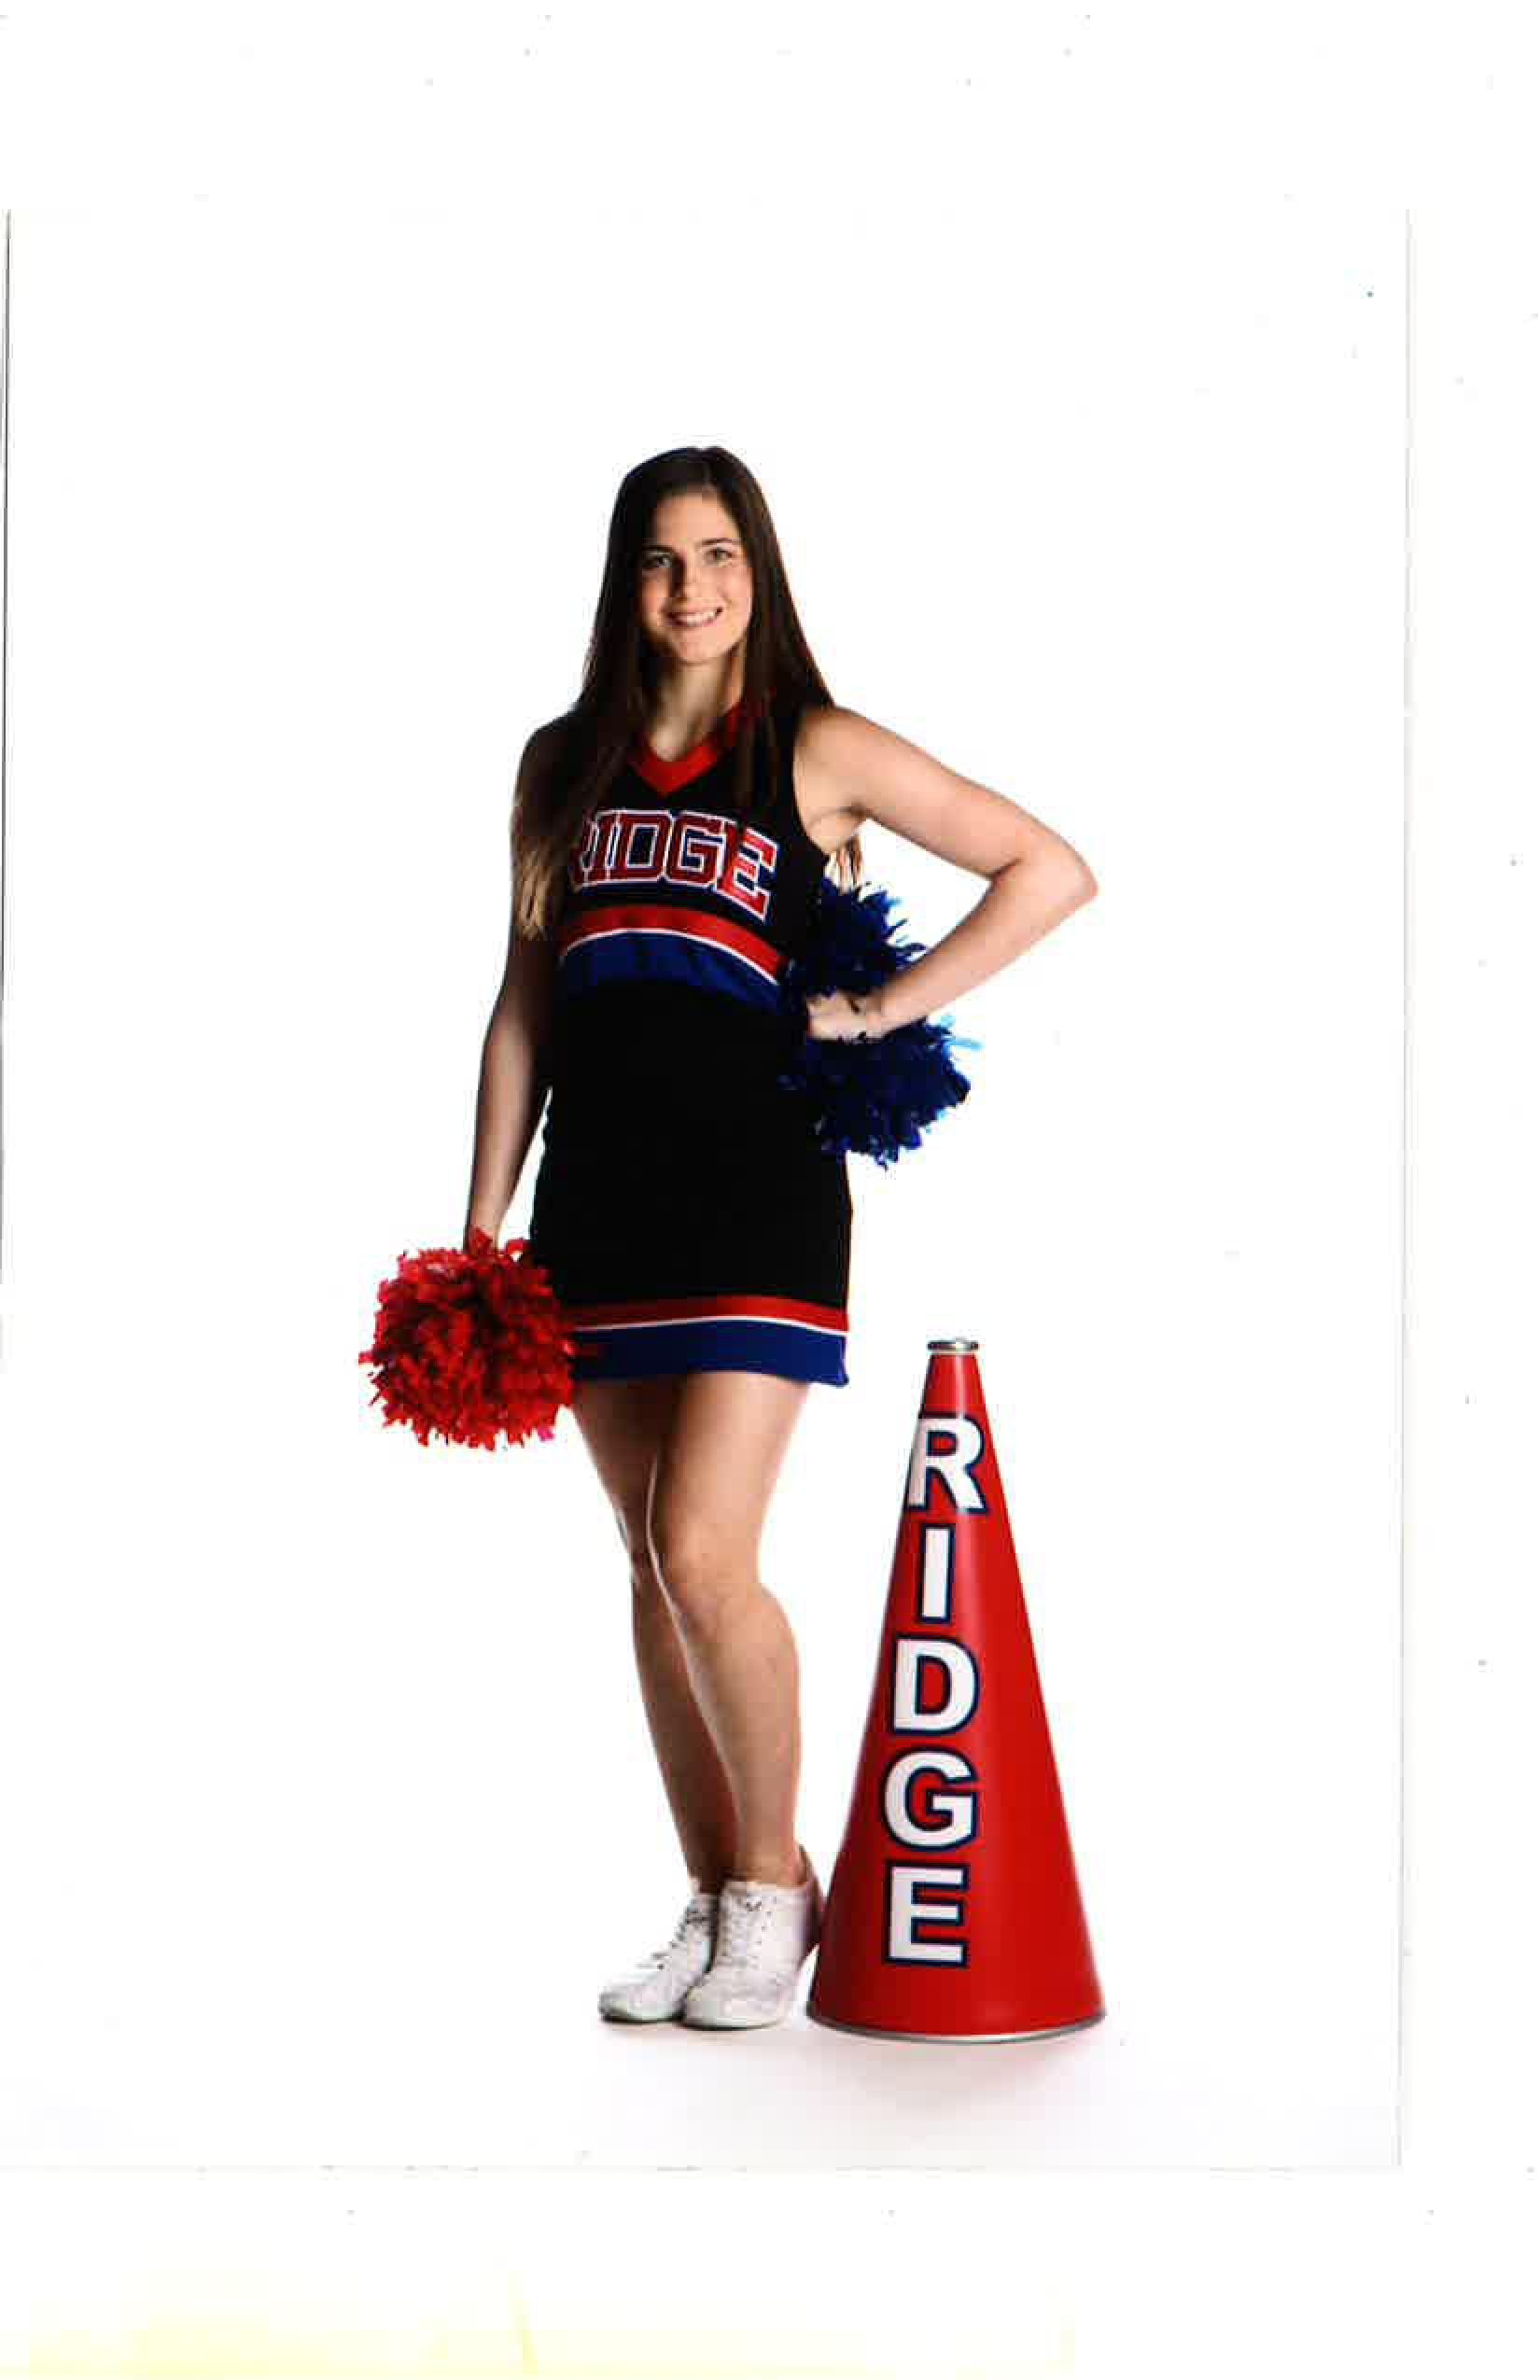 Skylar cheer photo1 (1).jpg